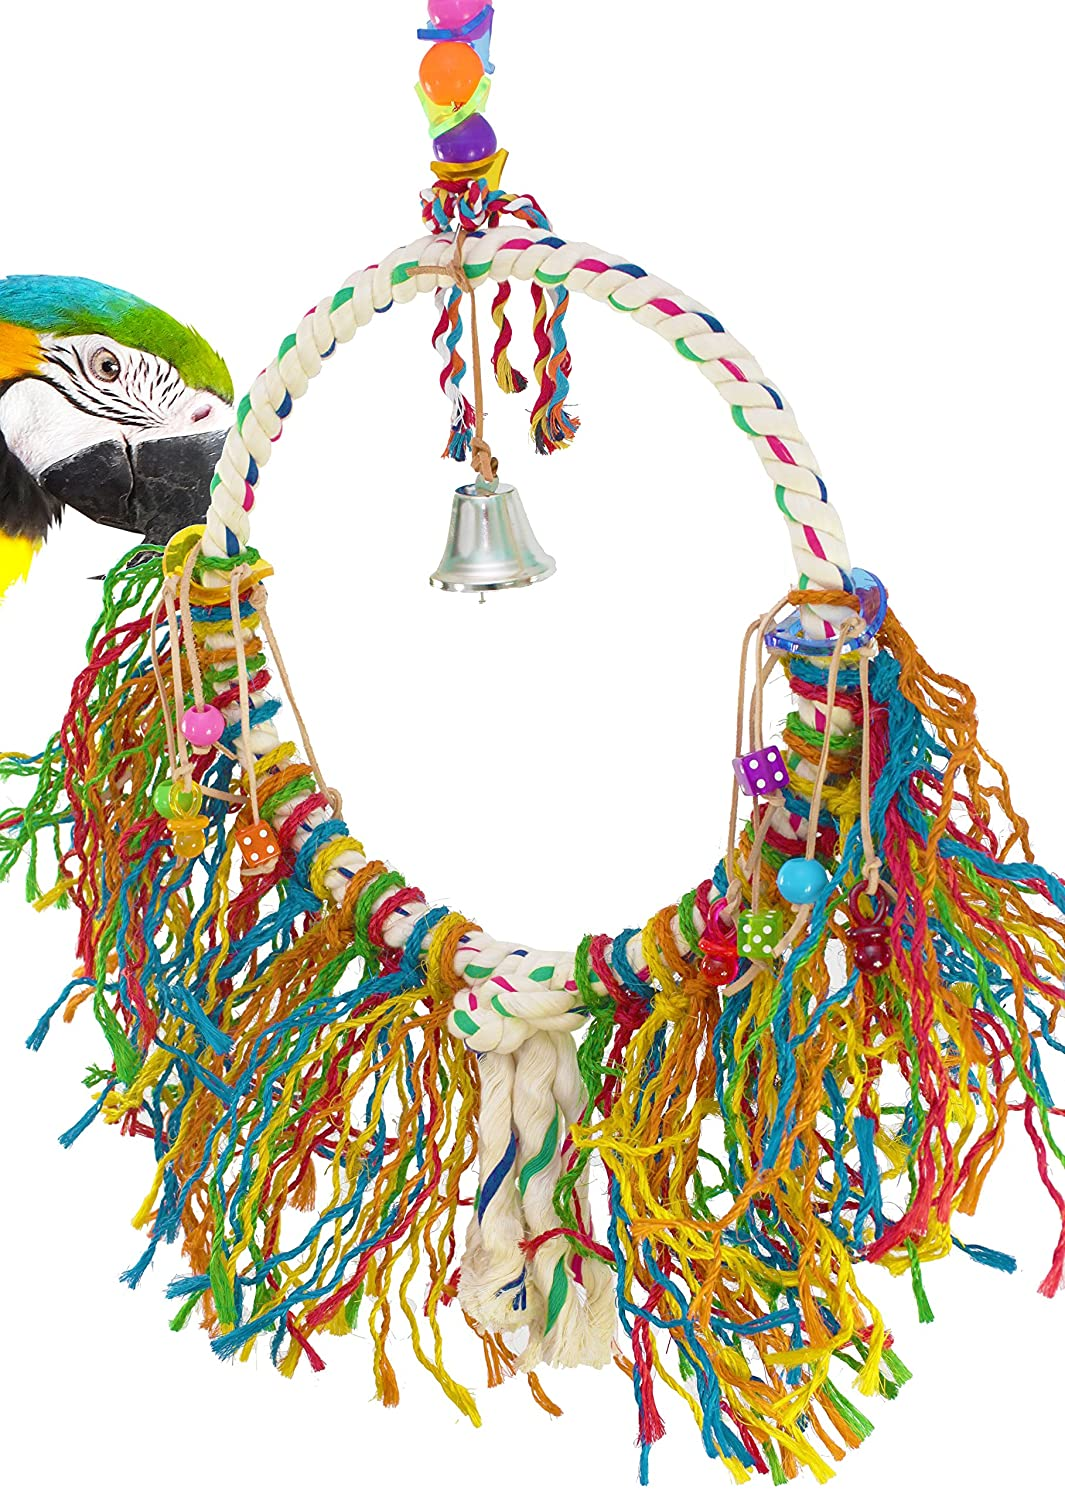 Bonka Bird Toys 1038 Huge Fuzz Rope Ring Bird Toy Parred cage Toys Cages Cockatoo Macaw Amazon